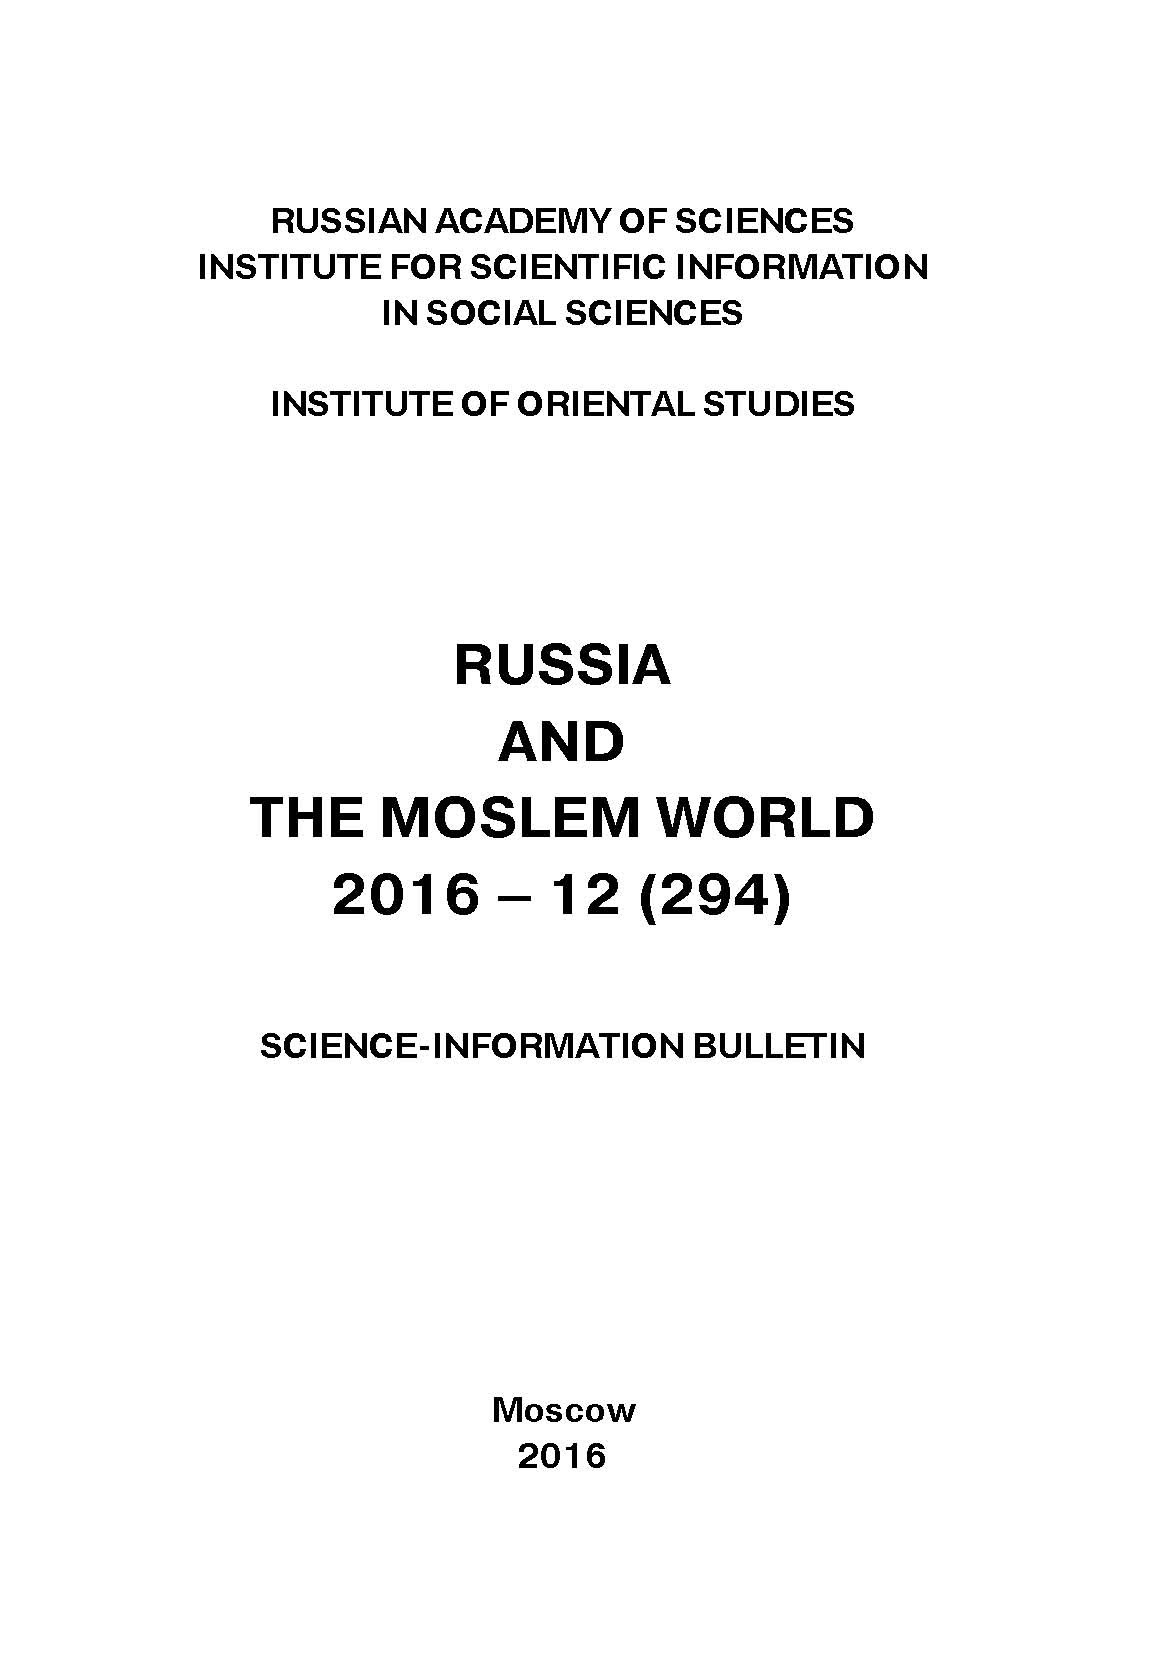 Сборник статей Russia and the Moslem World № 12 / 2016 сборник статей russia and the moslem world 05 2016